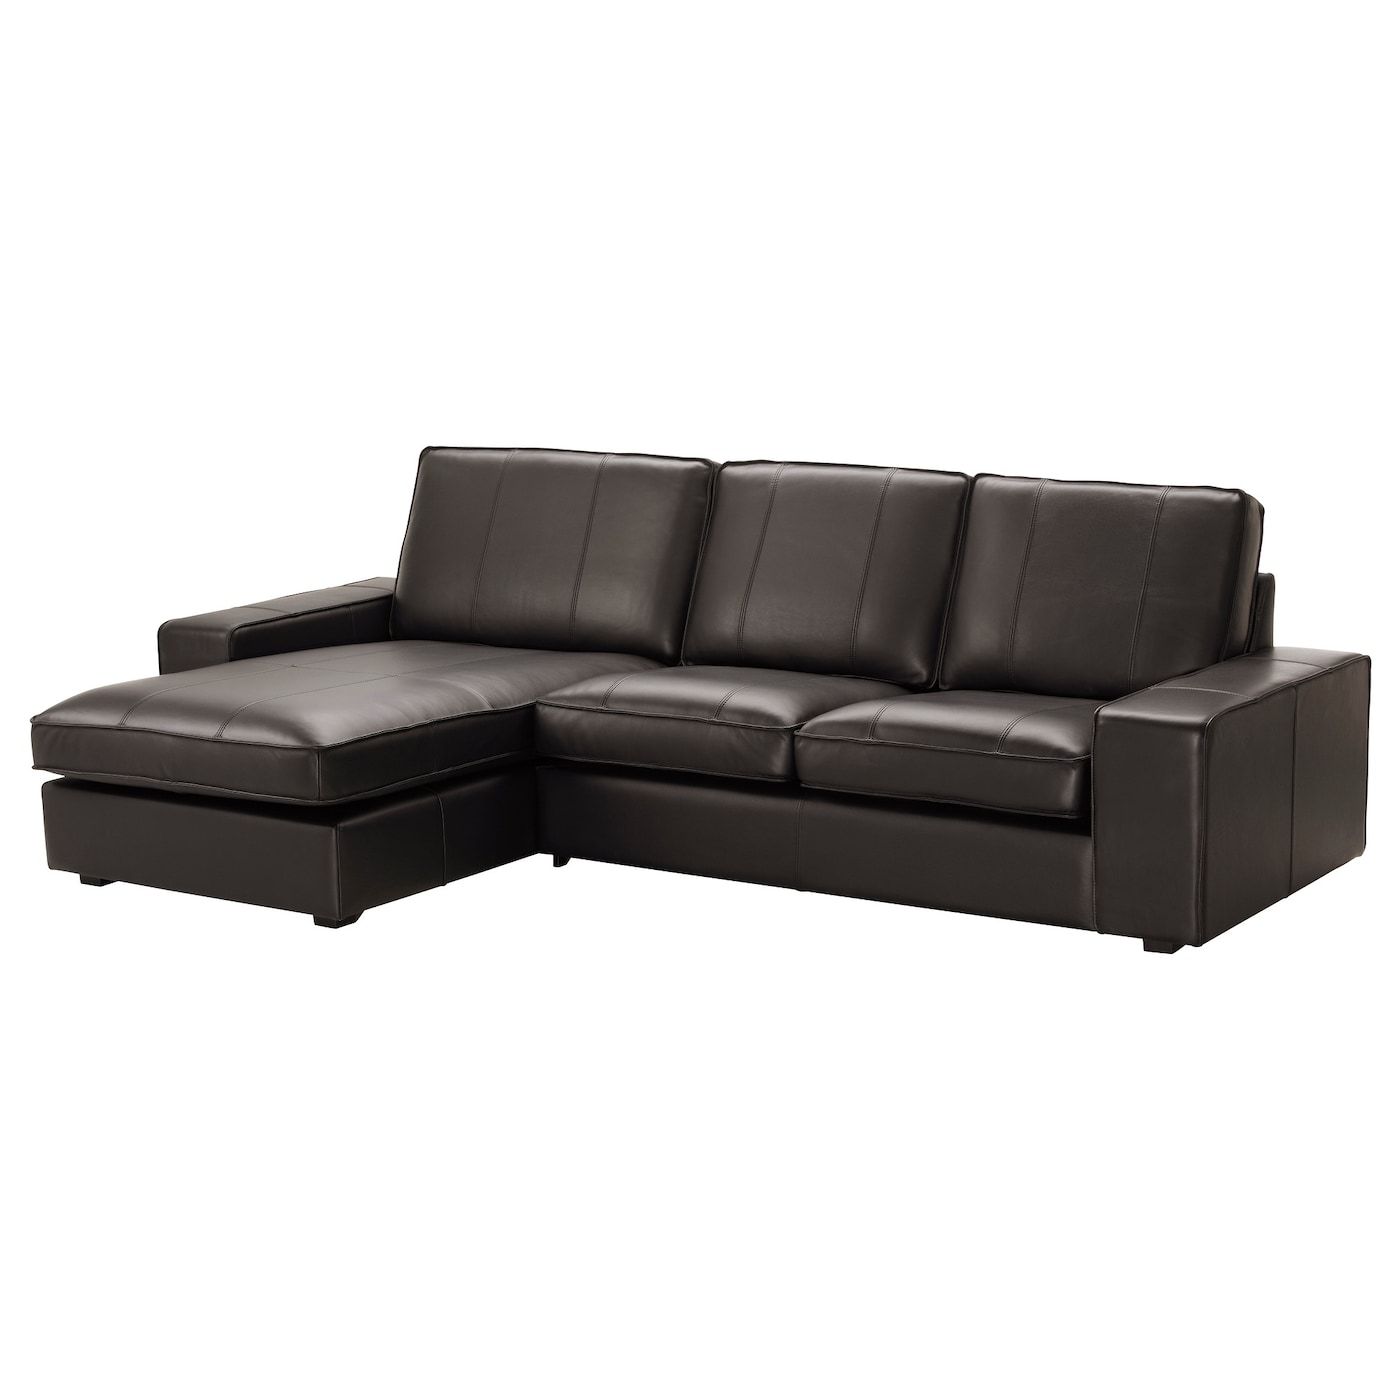 Leather coated fabric sofas ikea for Chaise longue salon